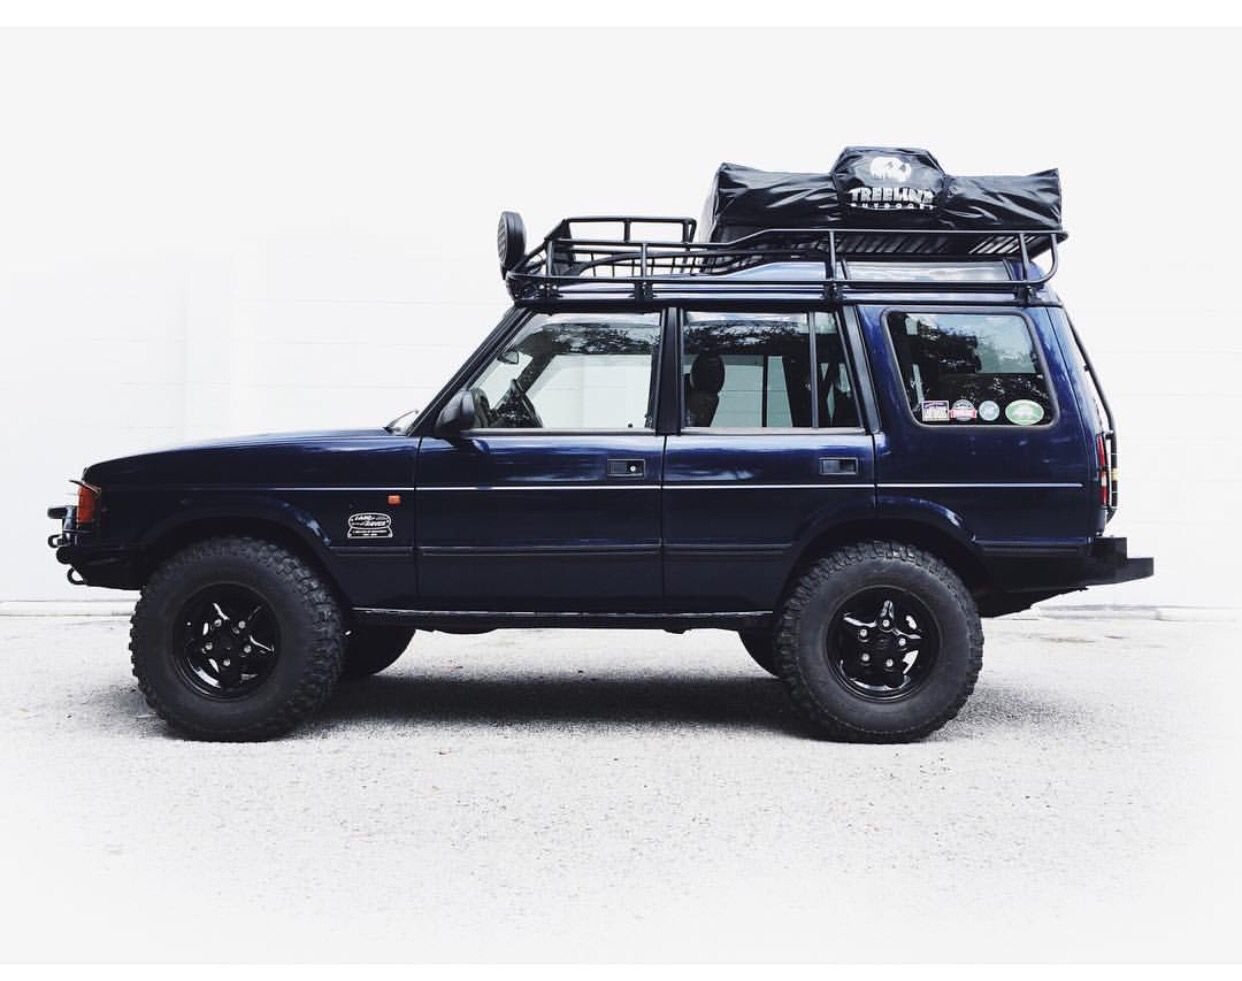 Overland Roof Top Tent Land Rover Land Rover Discovery Rover Discovery Land Rover